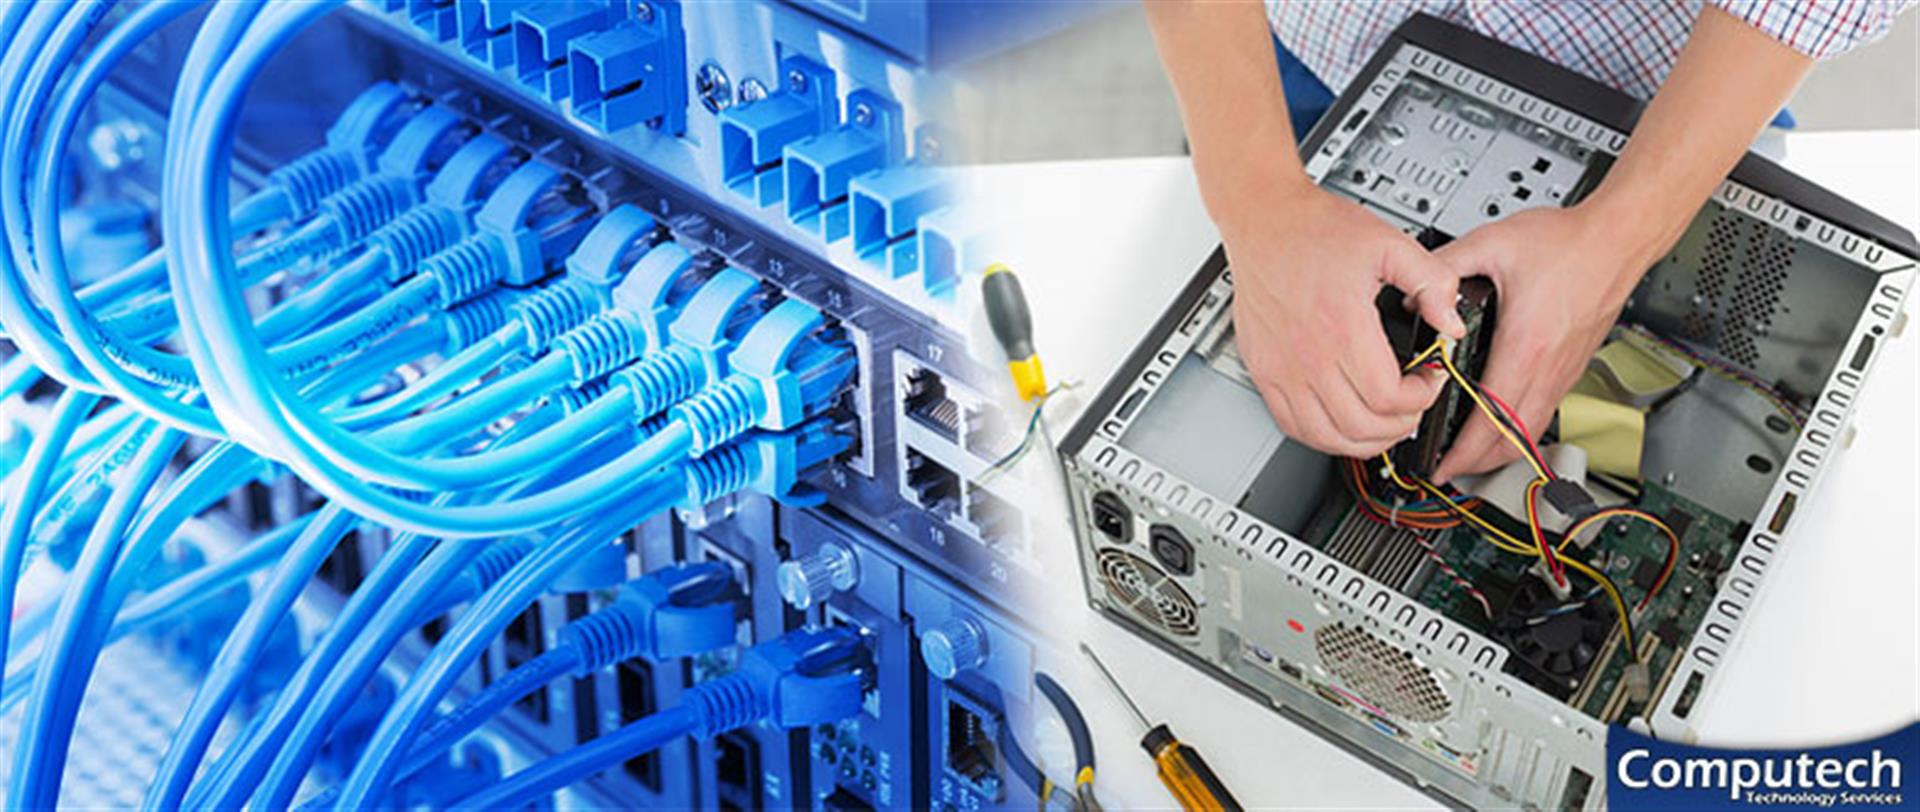 Weaver Alabama On Site Computer PC & Printer Repair, Networking, Voice & Data Low Voltage Cabling Services